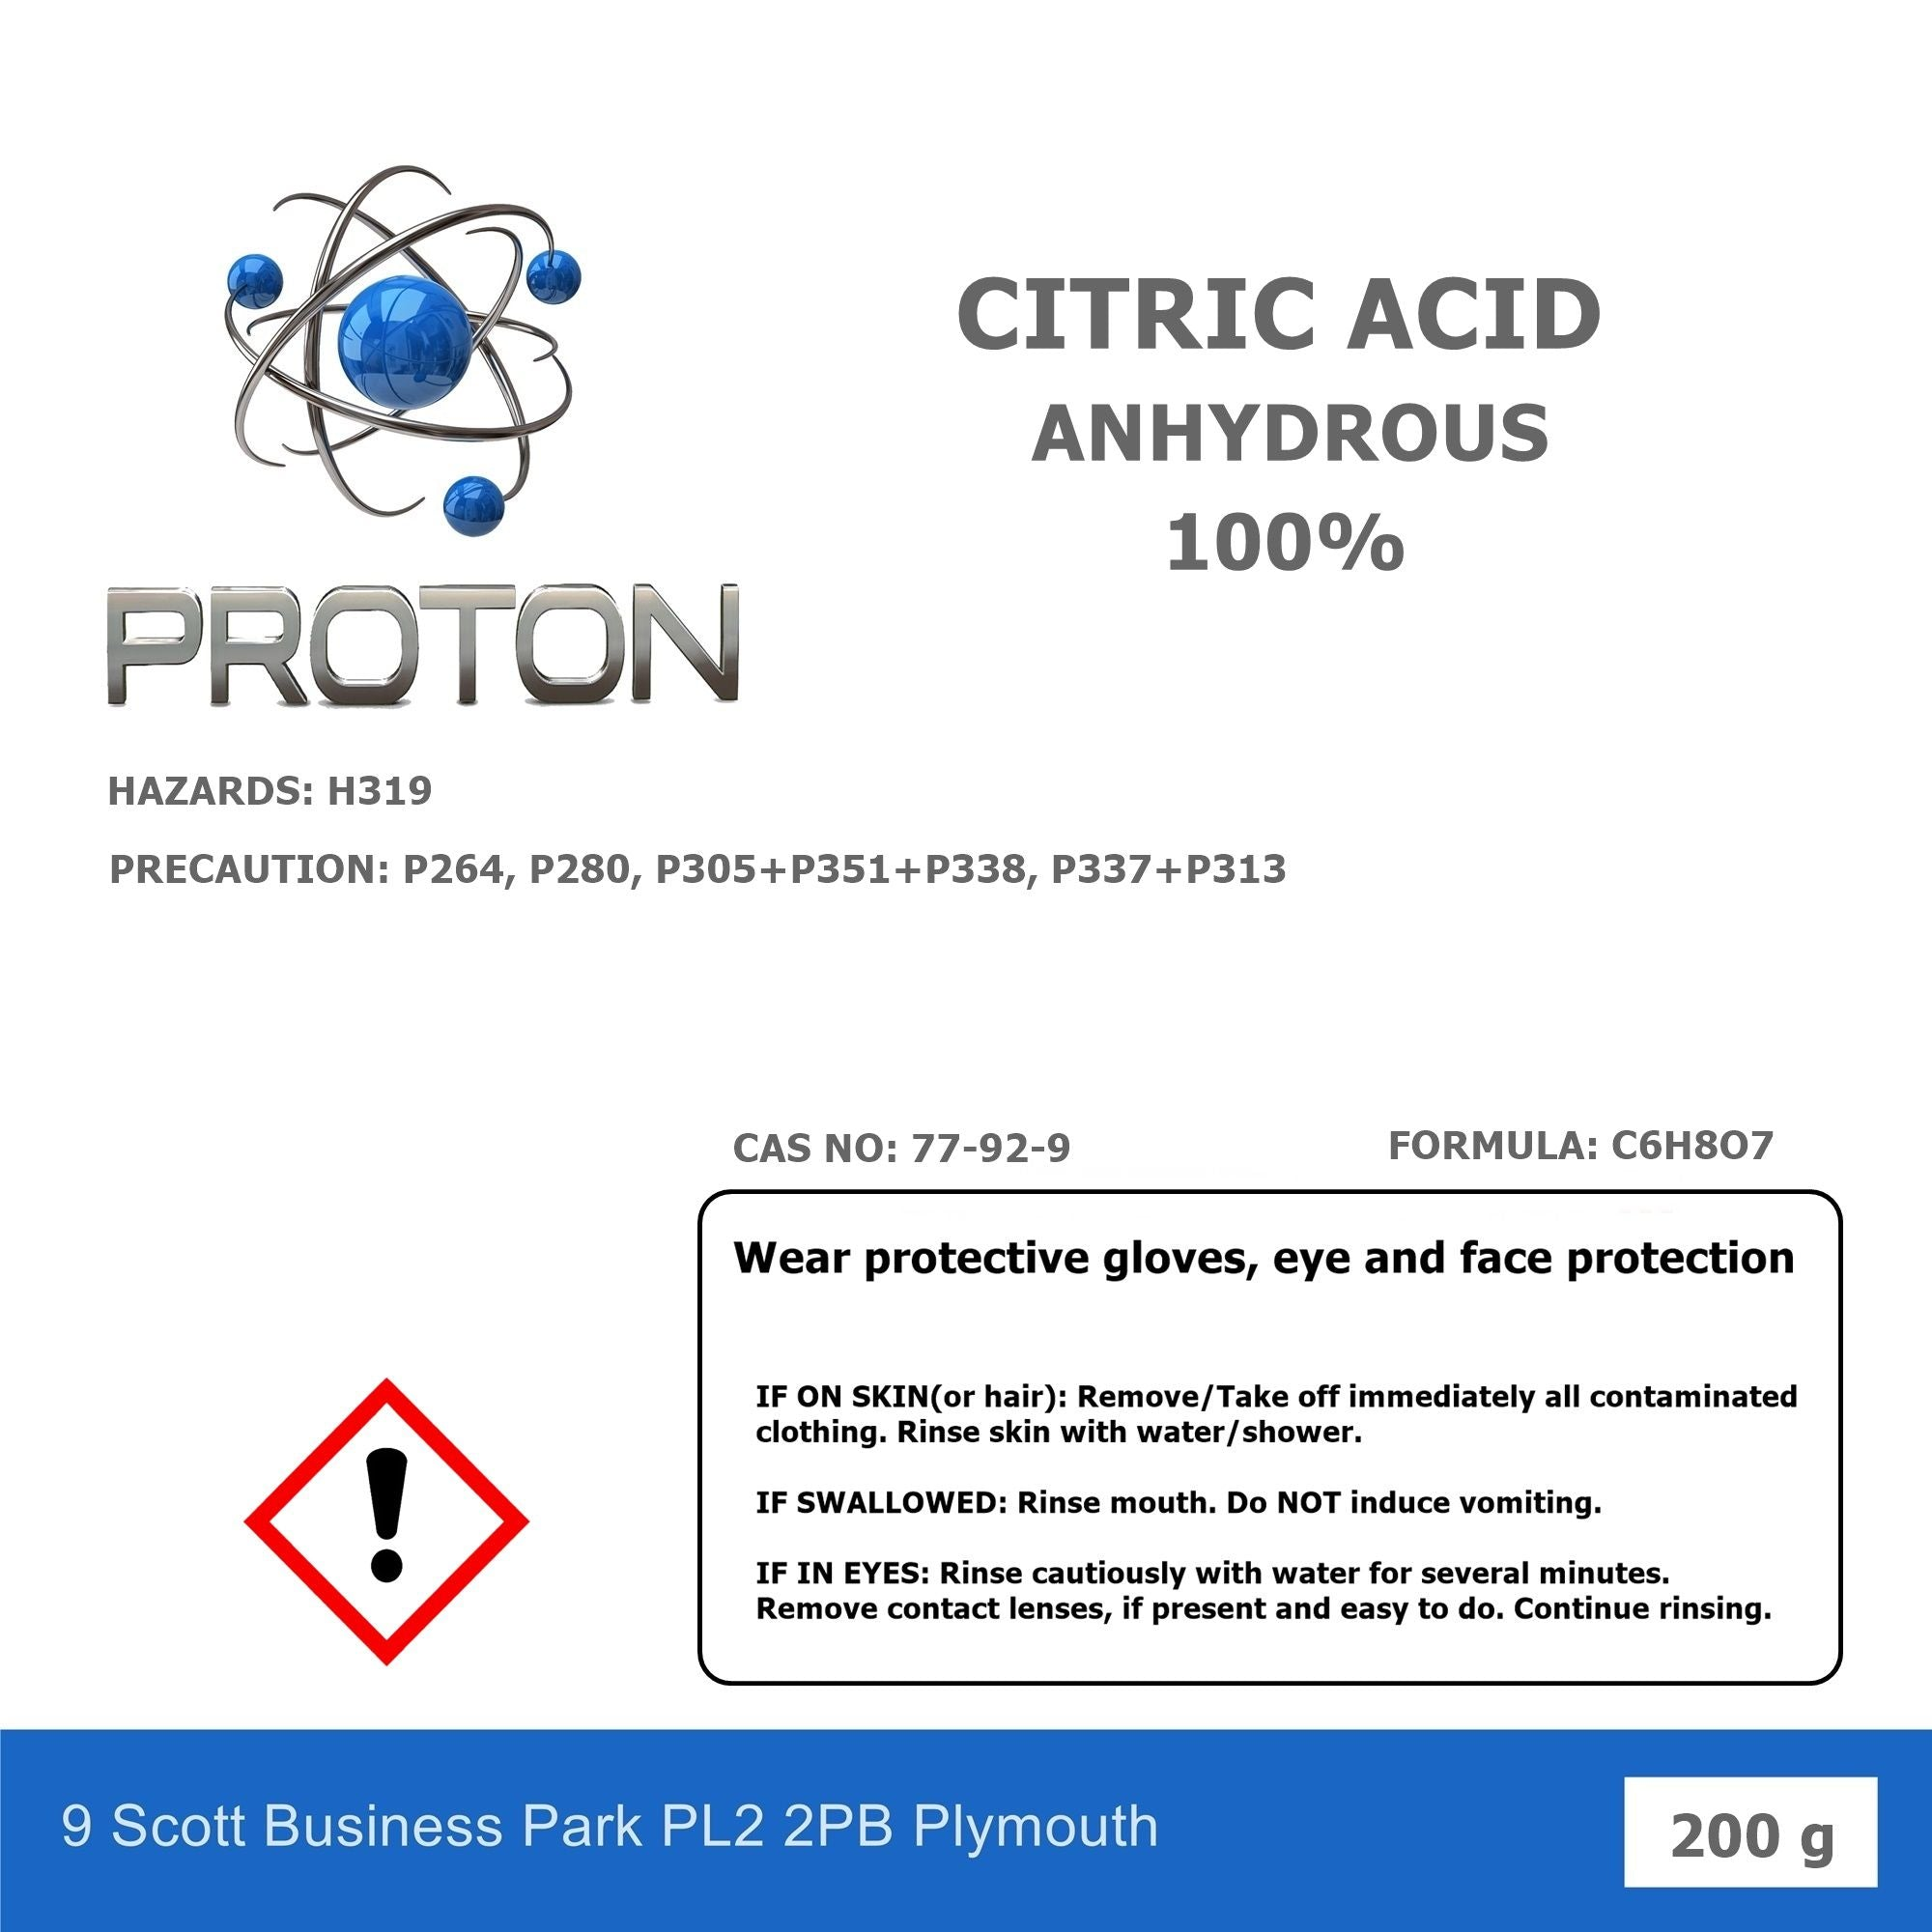 Citric Acid Anhydrous 100%